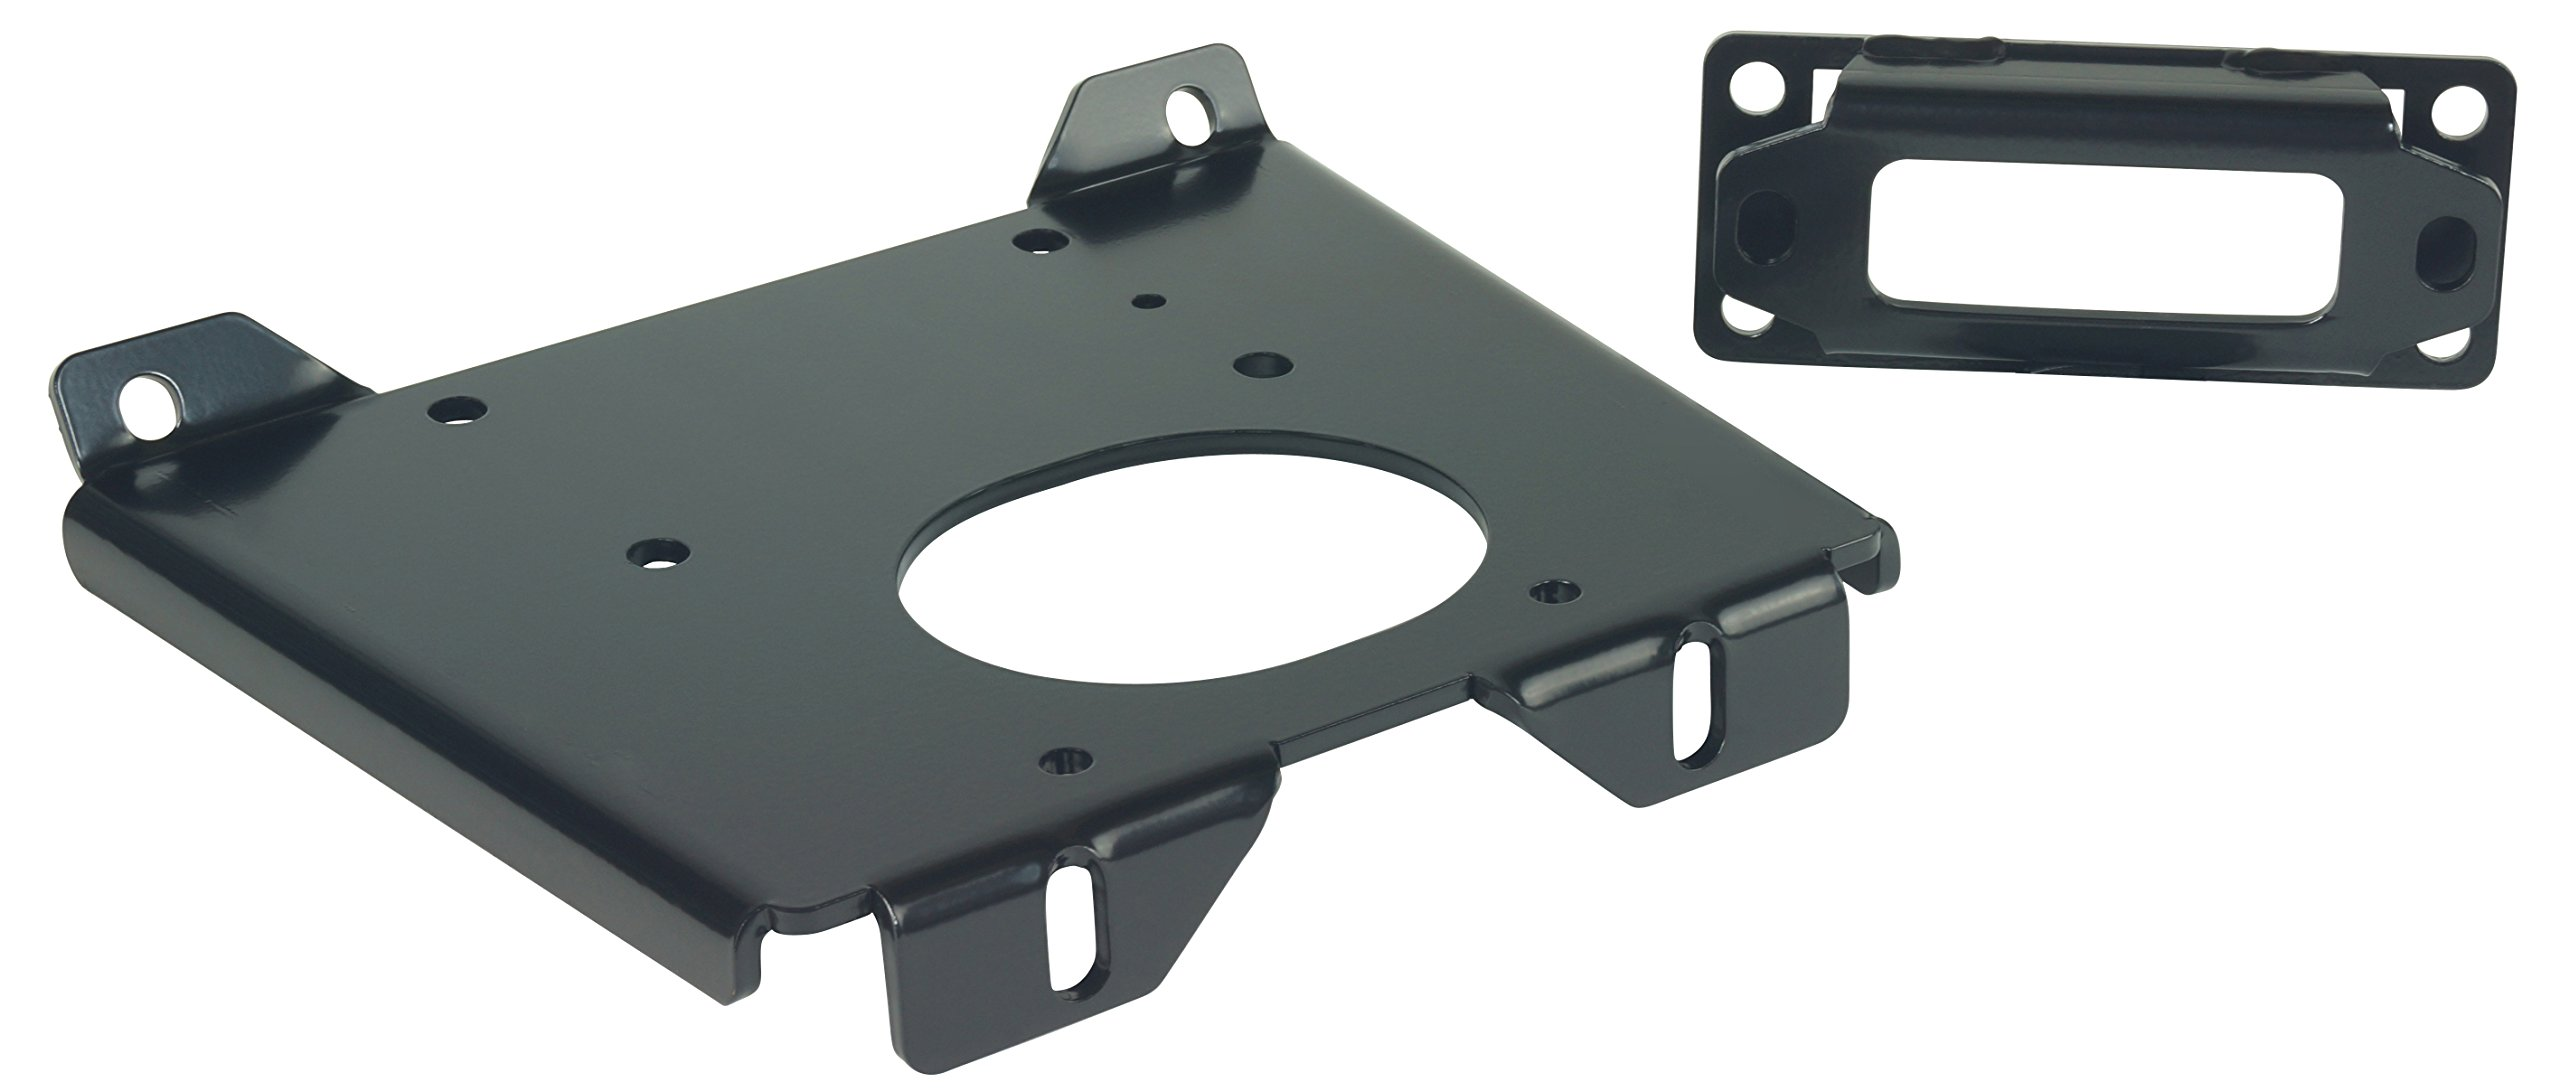 VIPER UTV Winch Mount Plate for 2016-2019 RZR Turbo by MotoAlliance